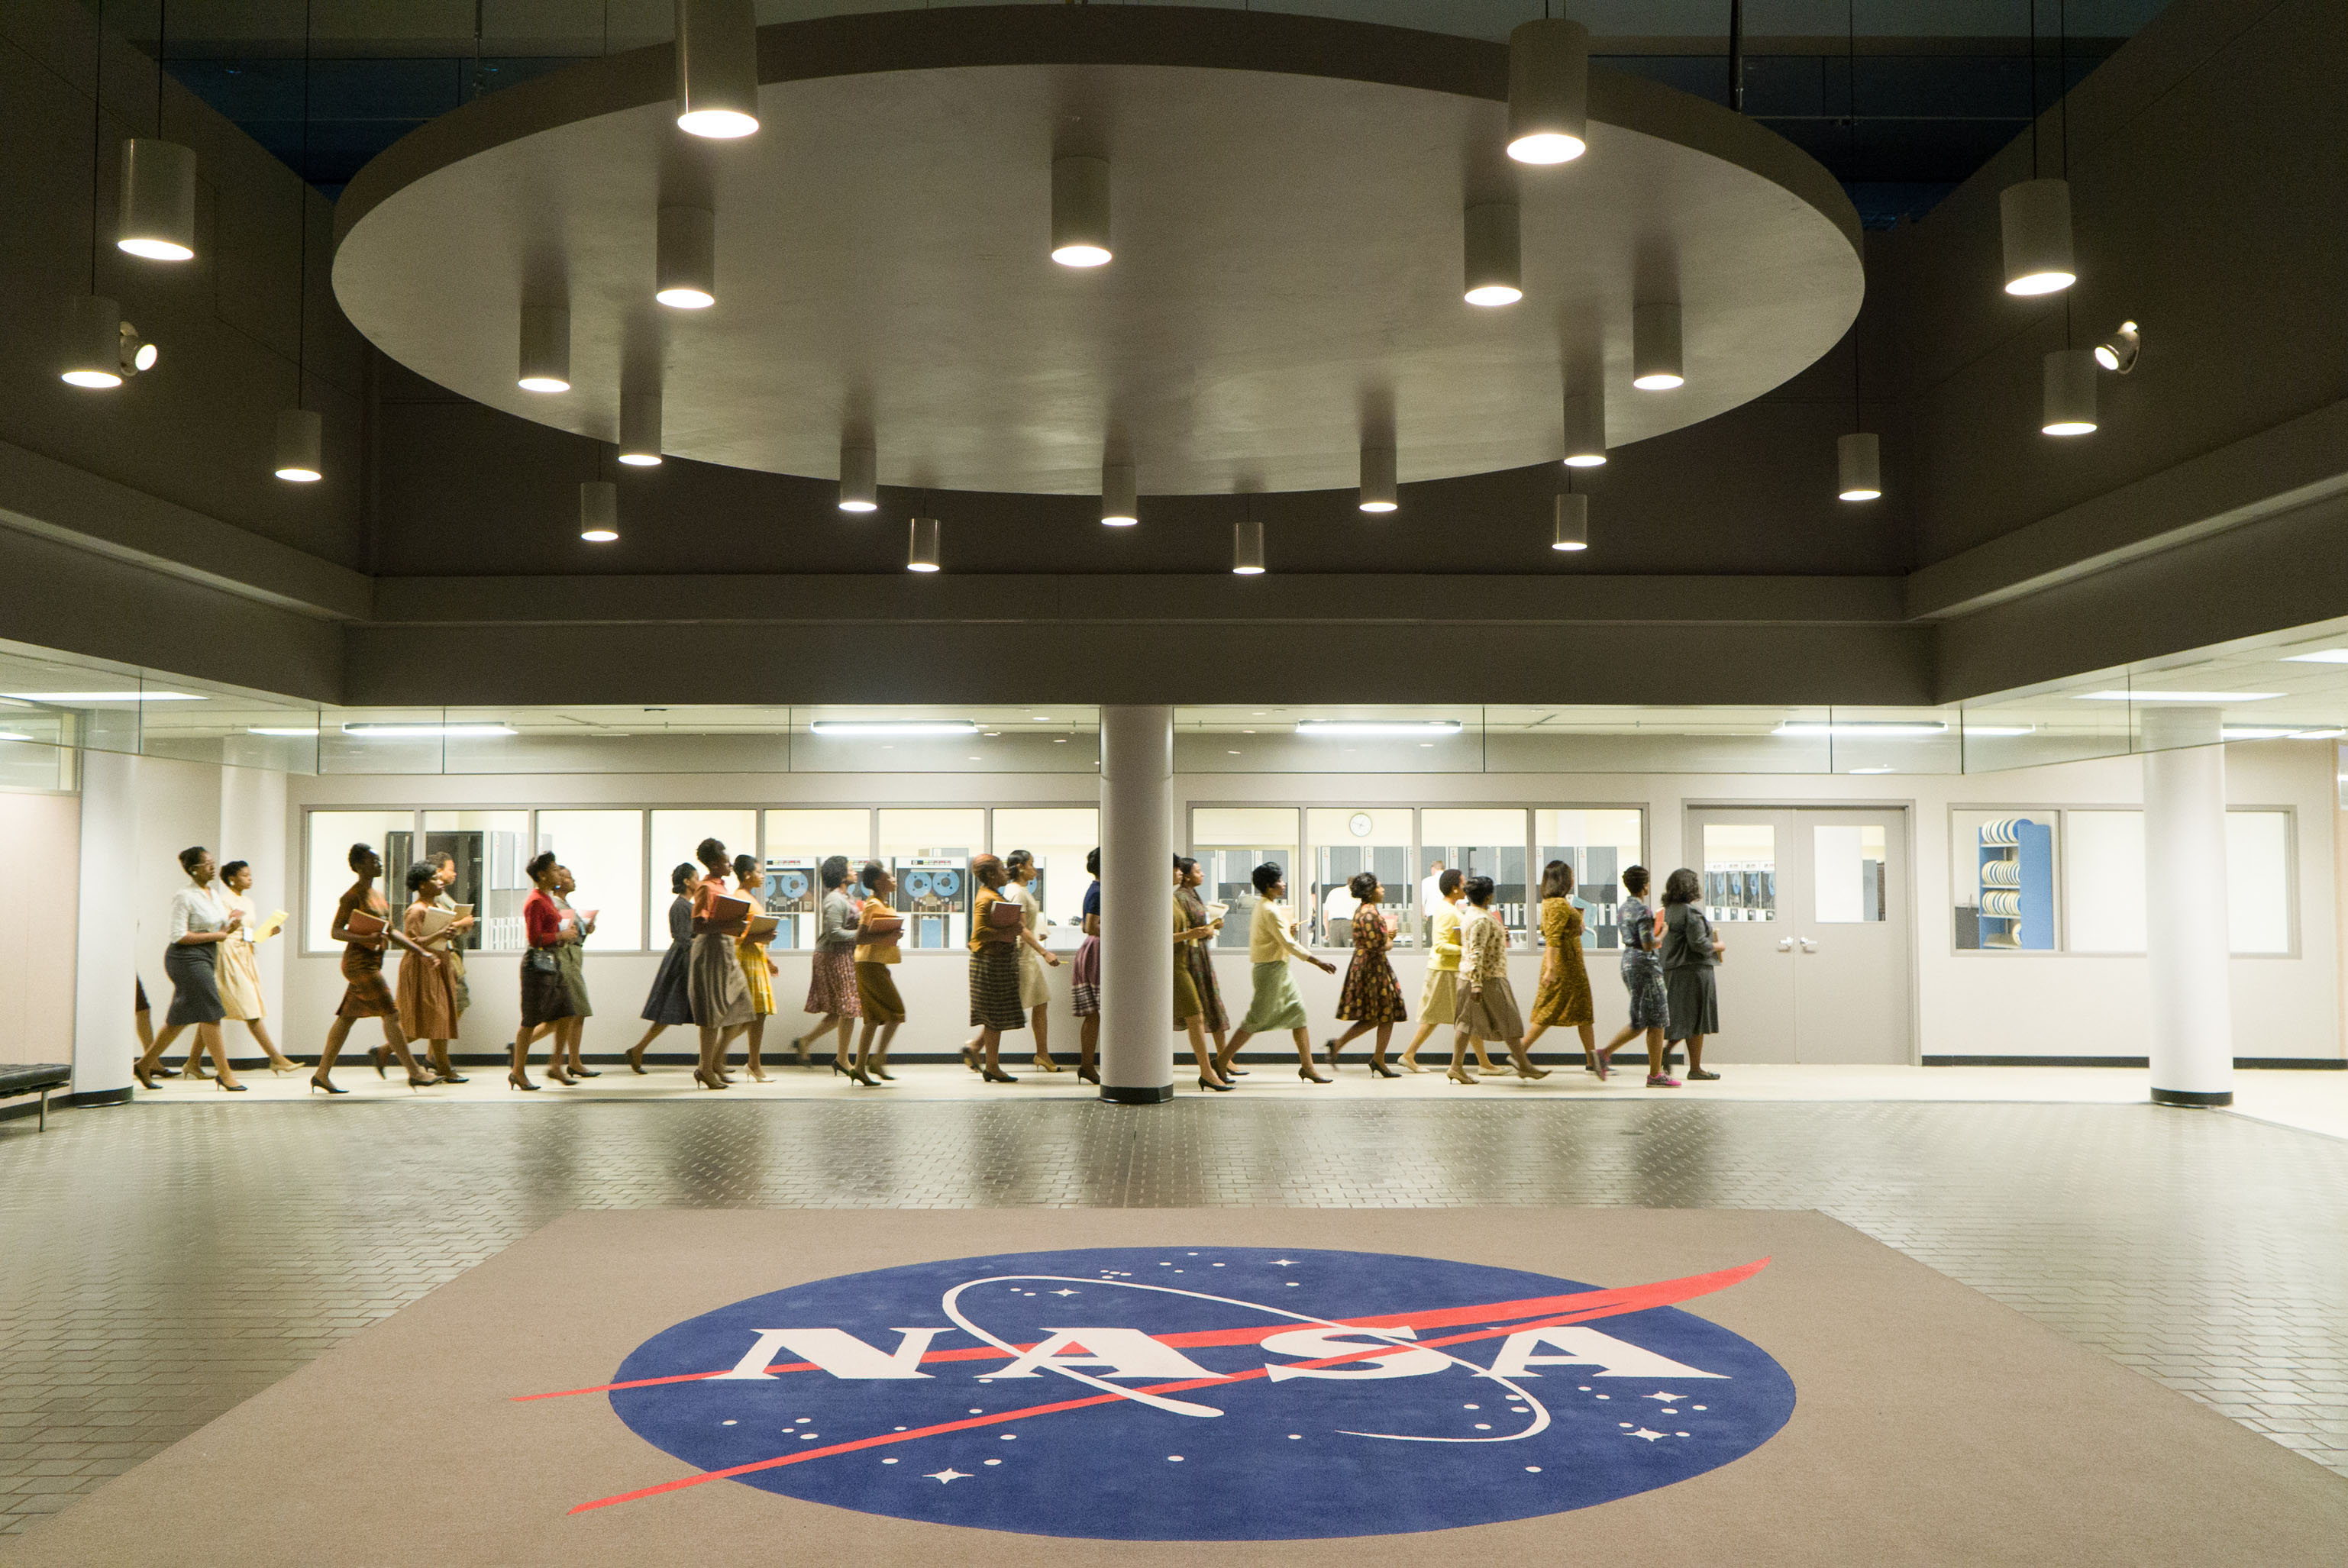 HIDDEN FIGURES is the incredible untold story of brilliant African-American women working at NASA, who served as the brains behind one of the greatest operations in history: the launch of astronaut John Glenn into orbit.